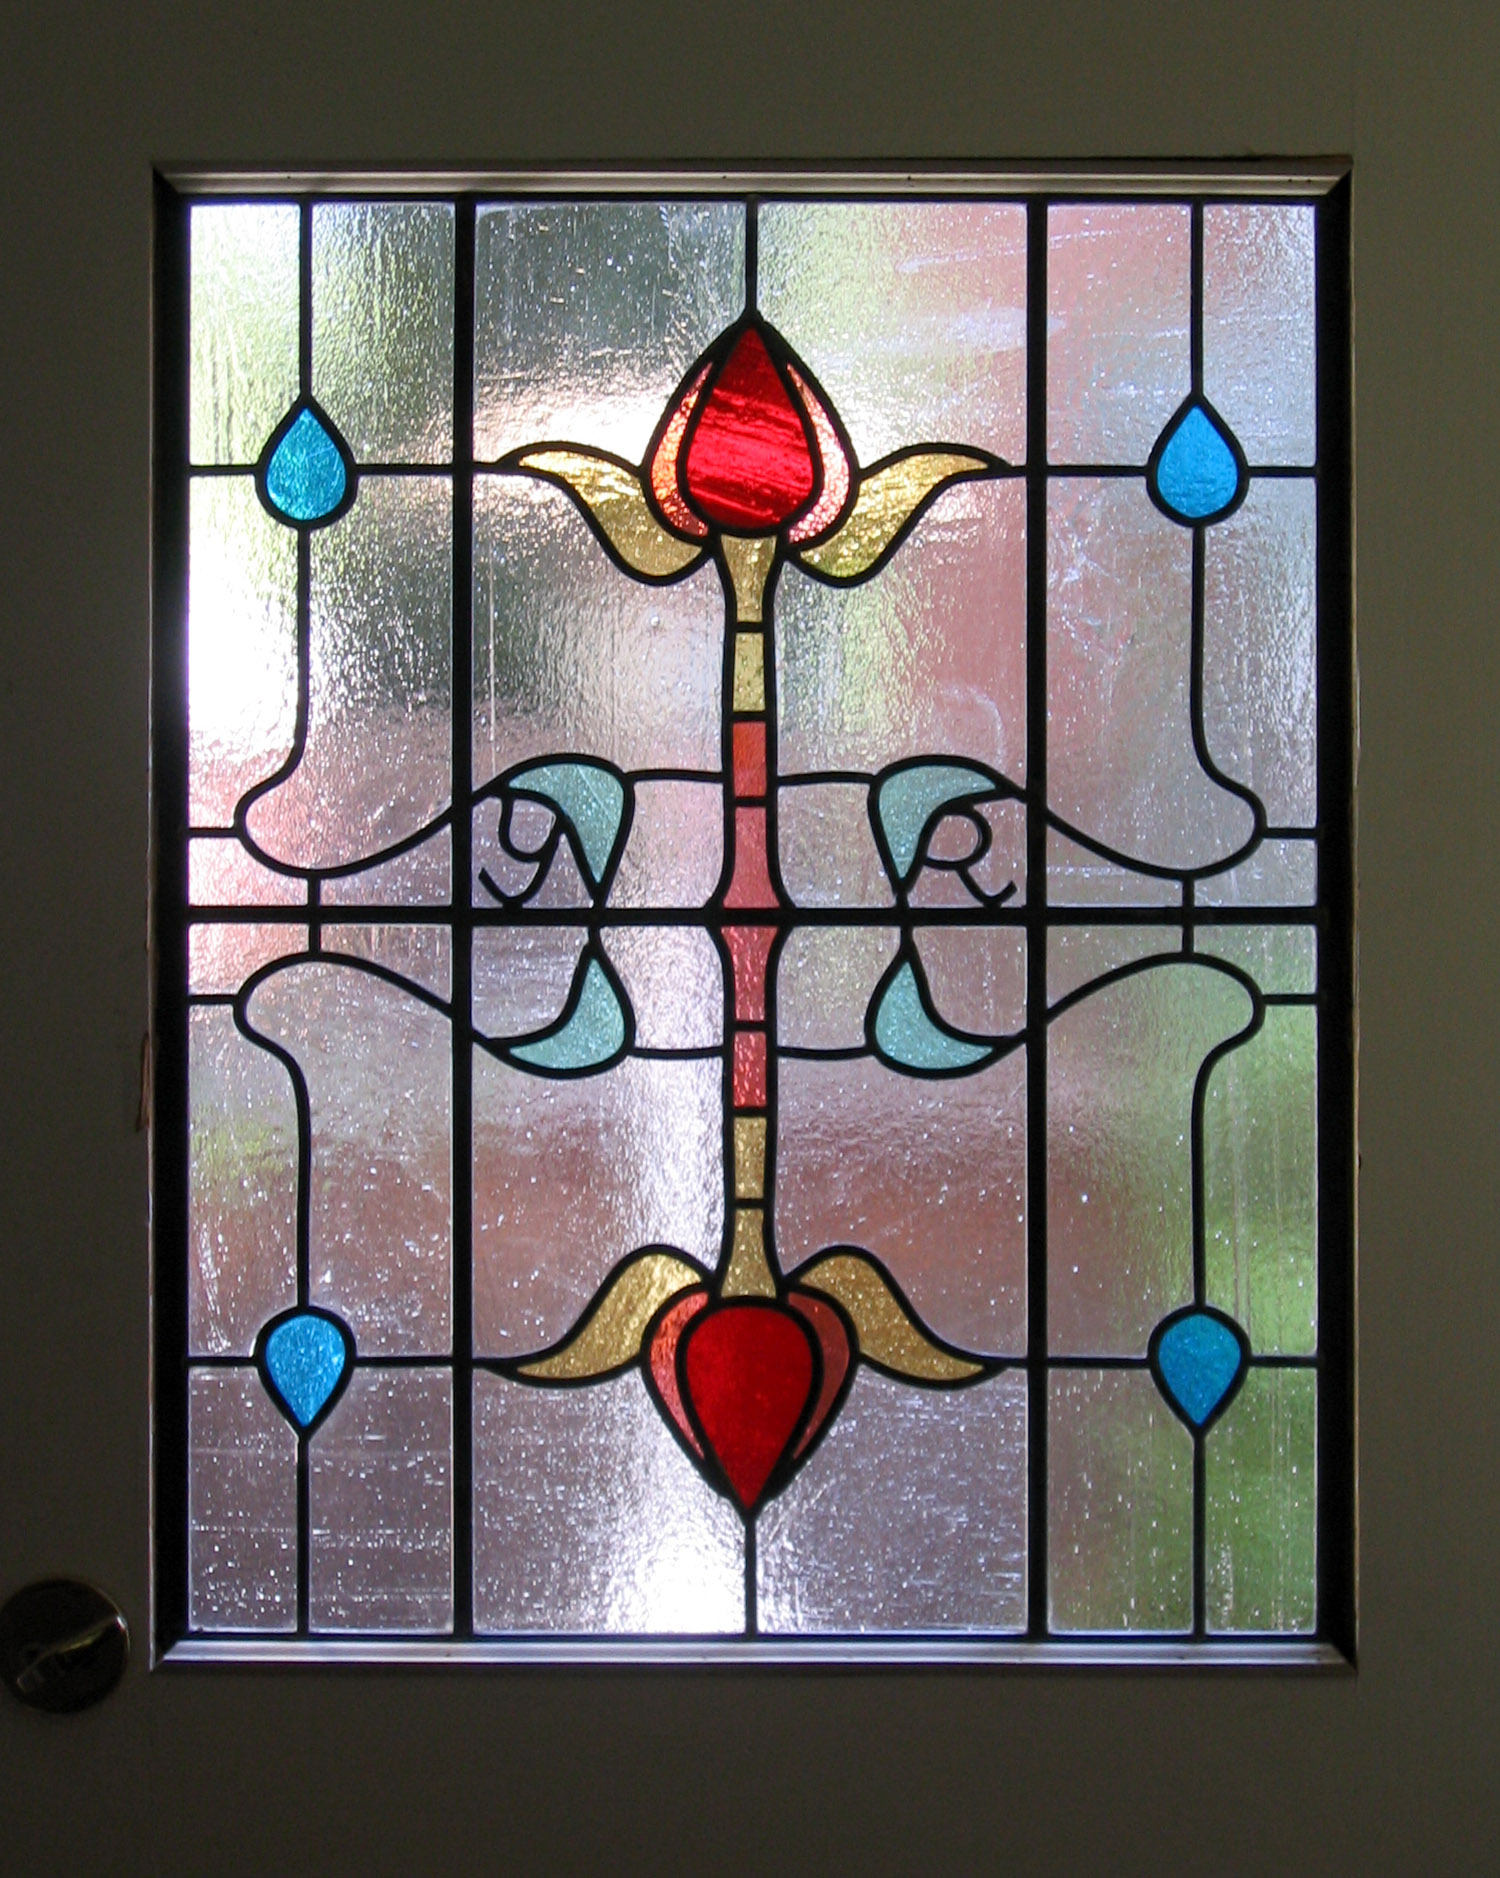 symmetrical flower floral craftsman leaded glass stained glass window palo alto atherton california san francisco san jose.jpg